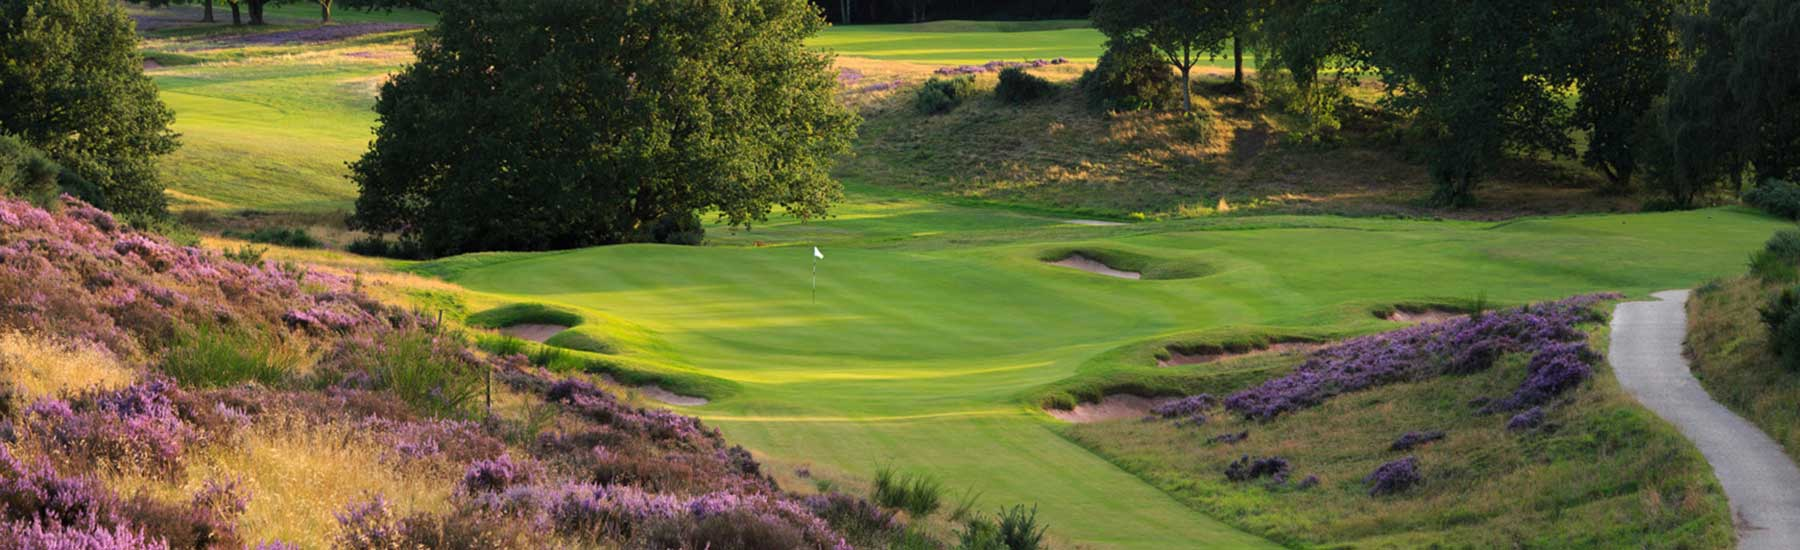 Best Hidden Gem Golf Courses in the UK & Ireland